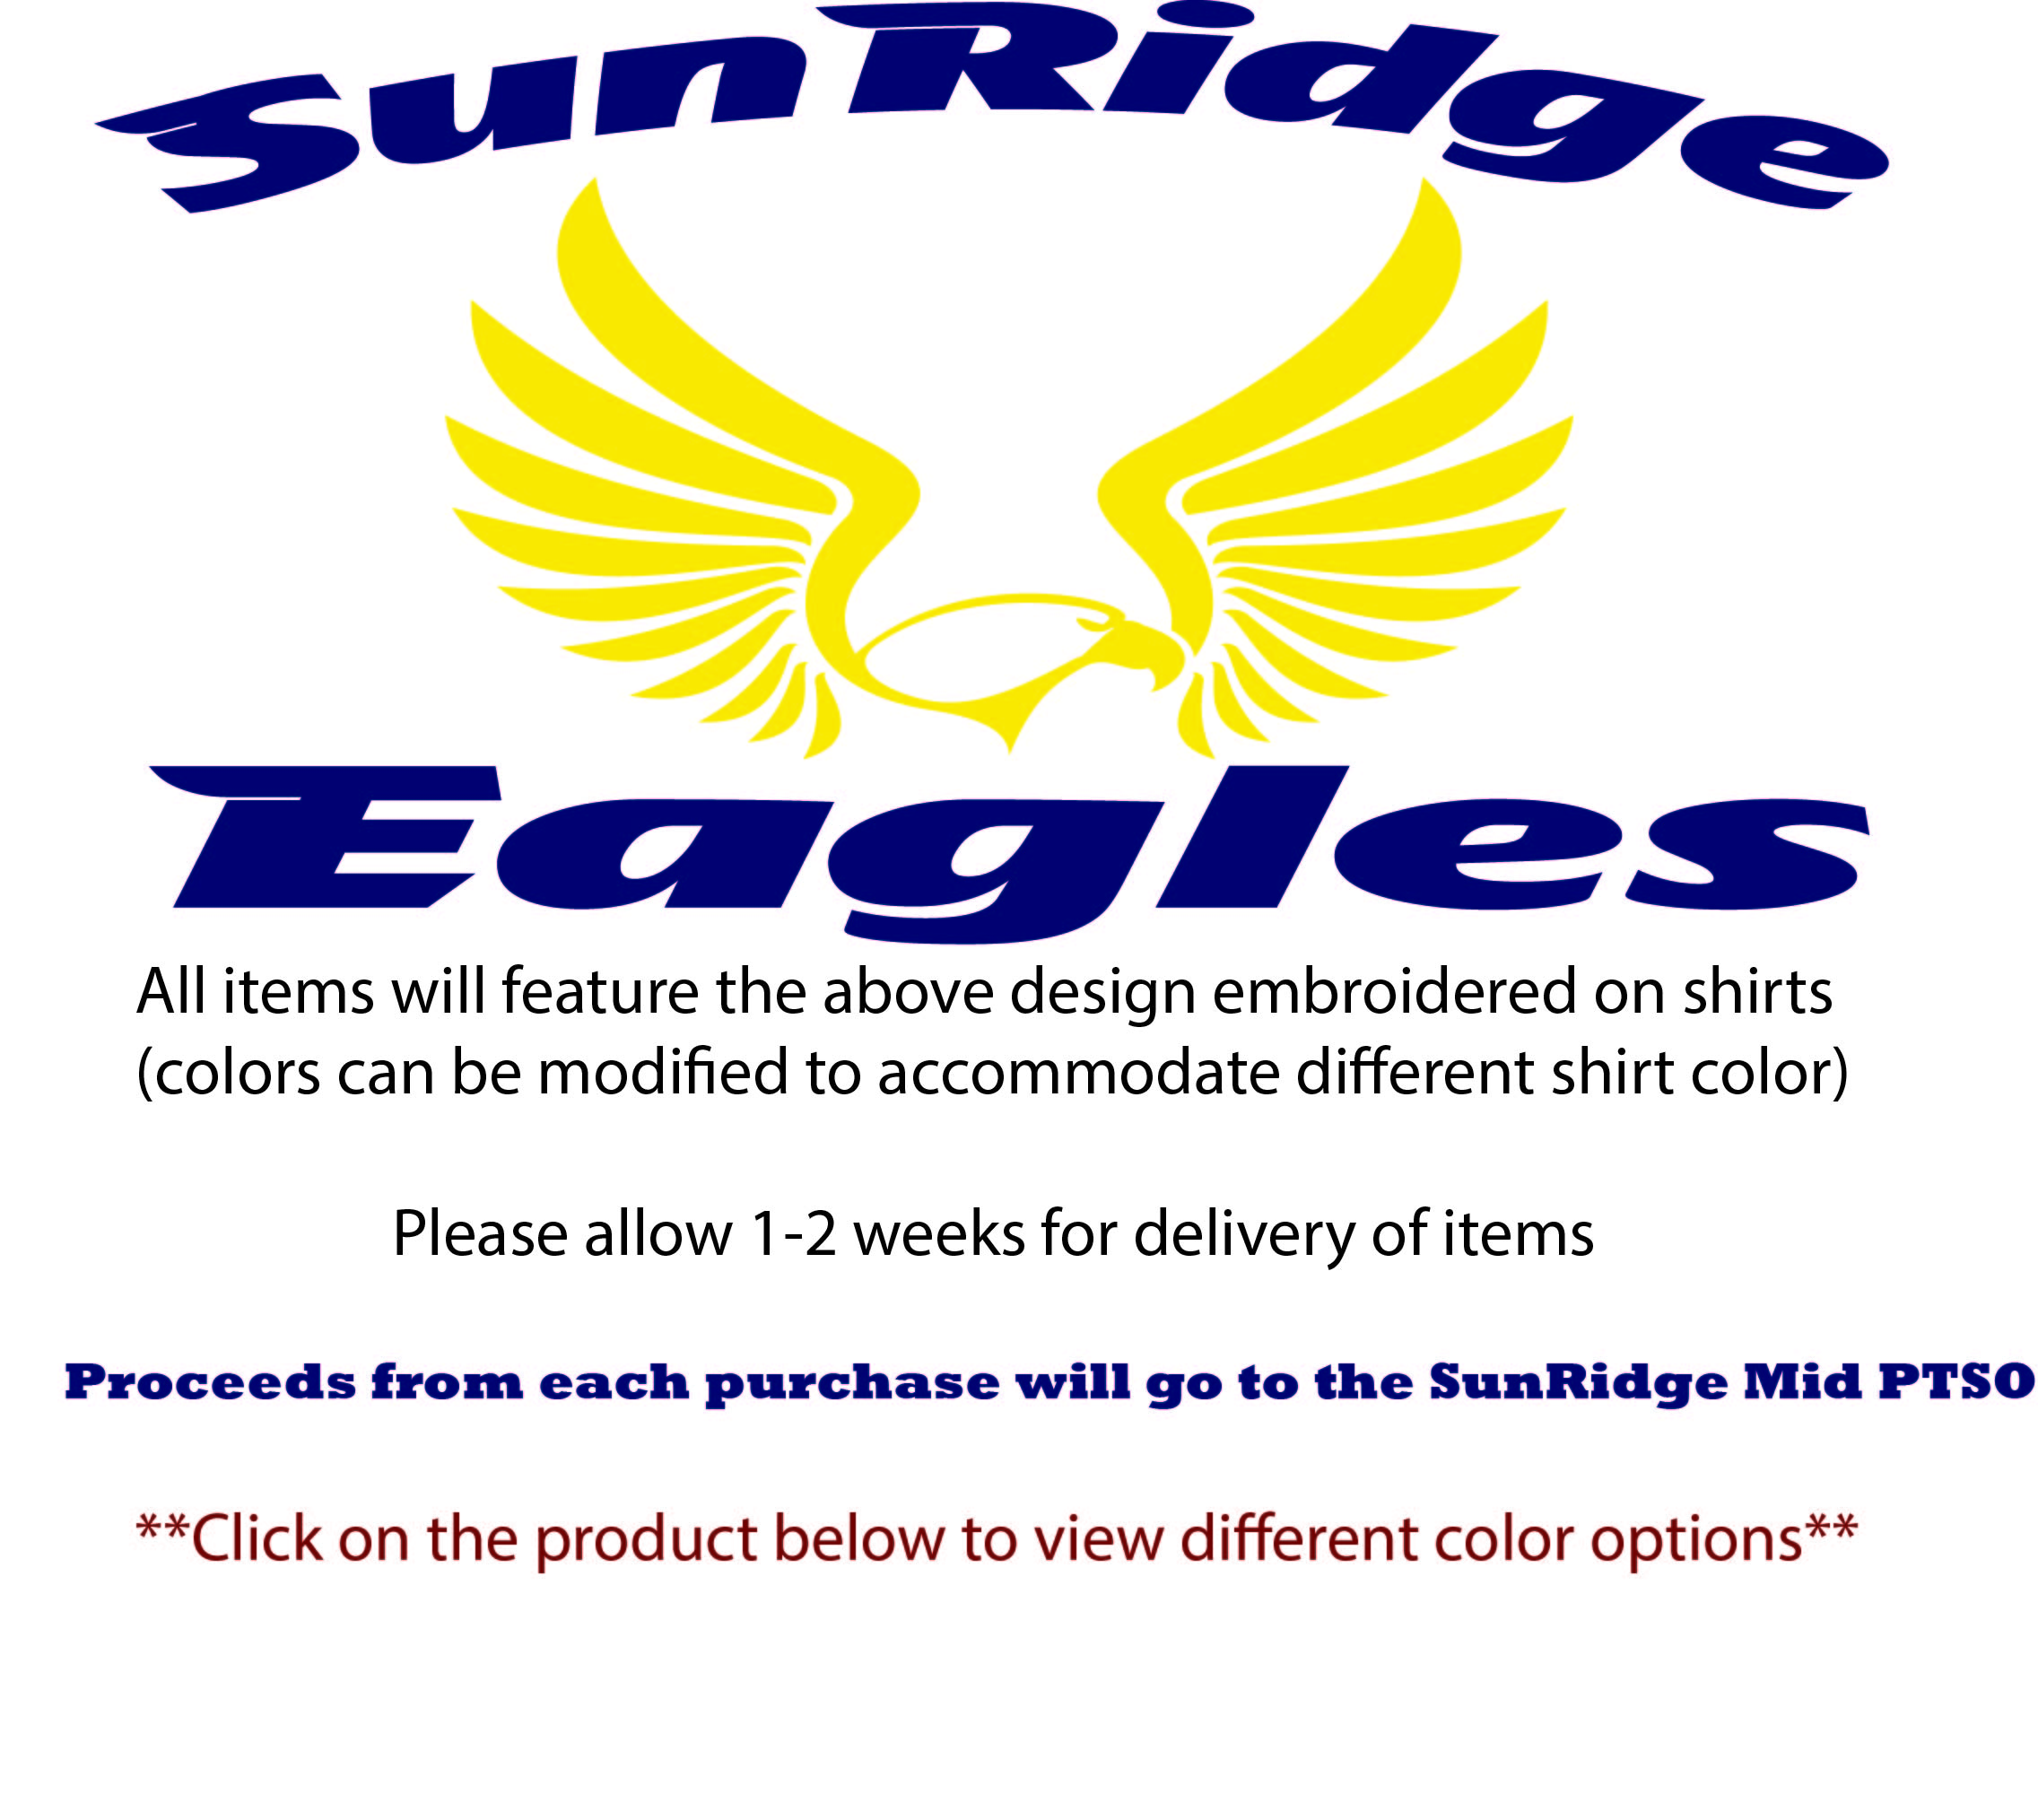 sunridge-middle-web-site-header-staff.jpg